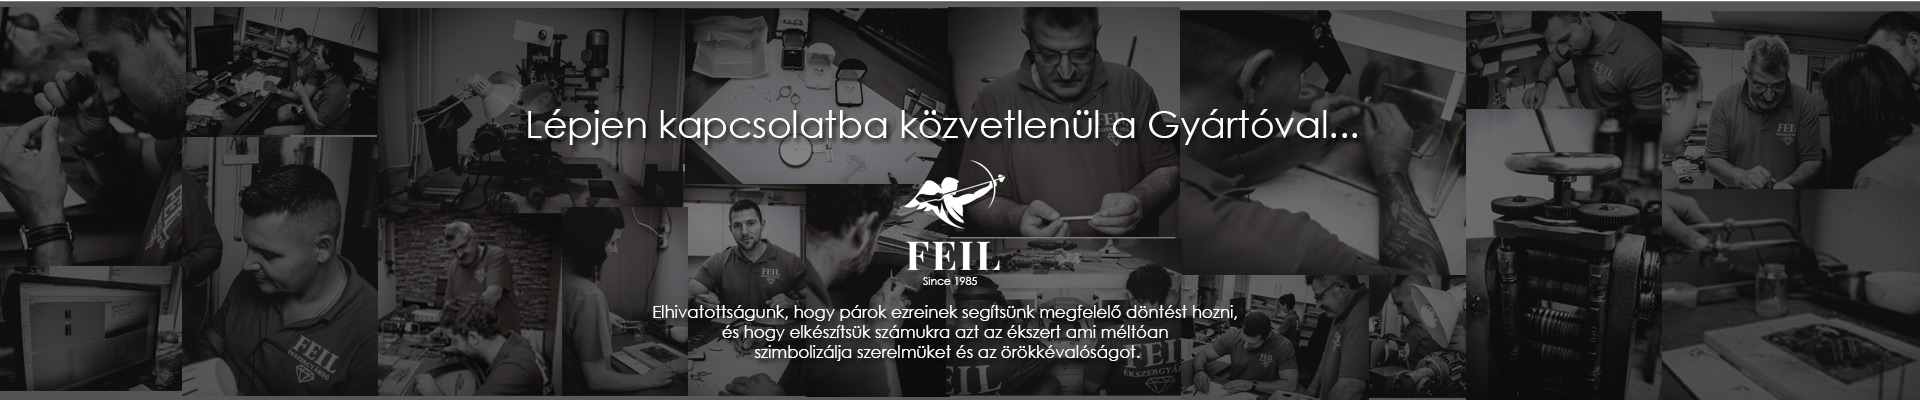 Feil �kszergy�rt�s